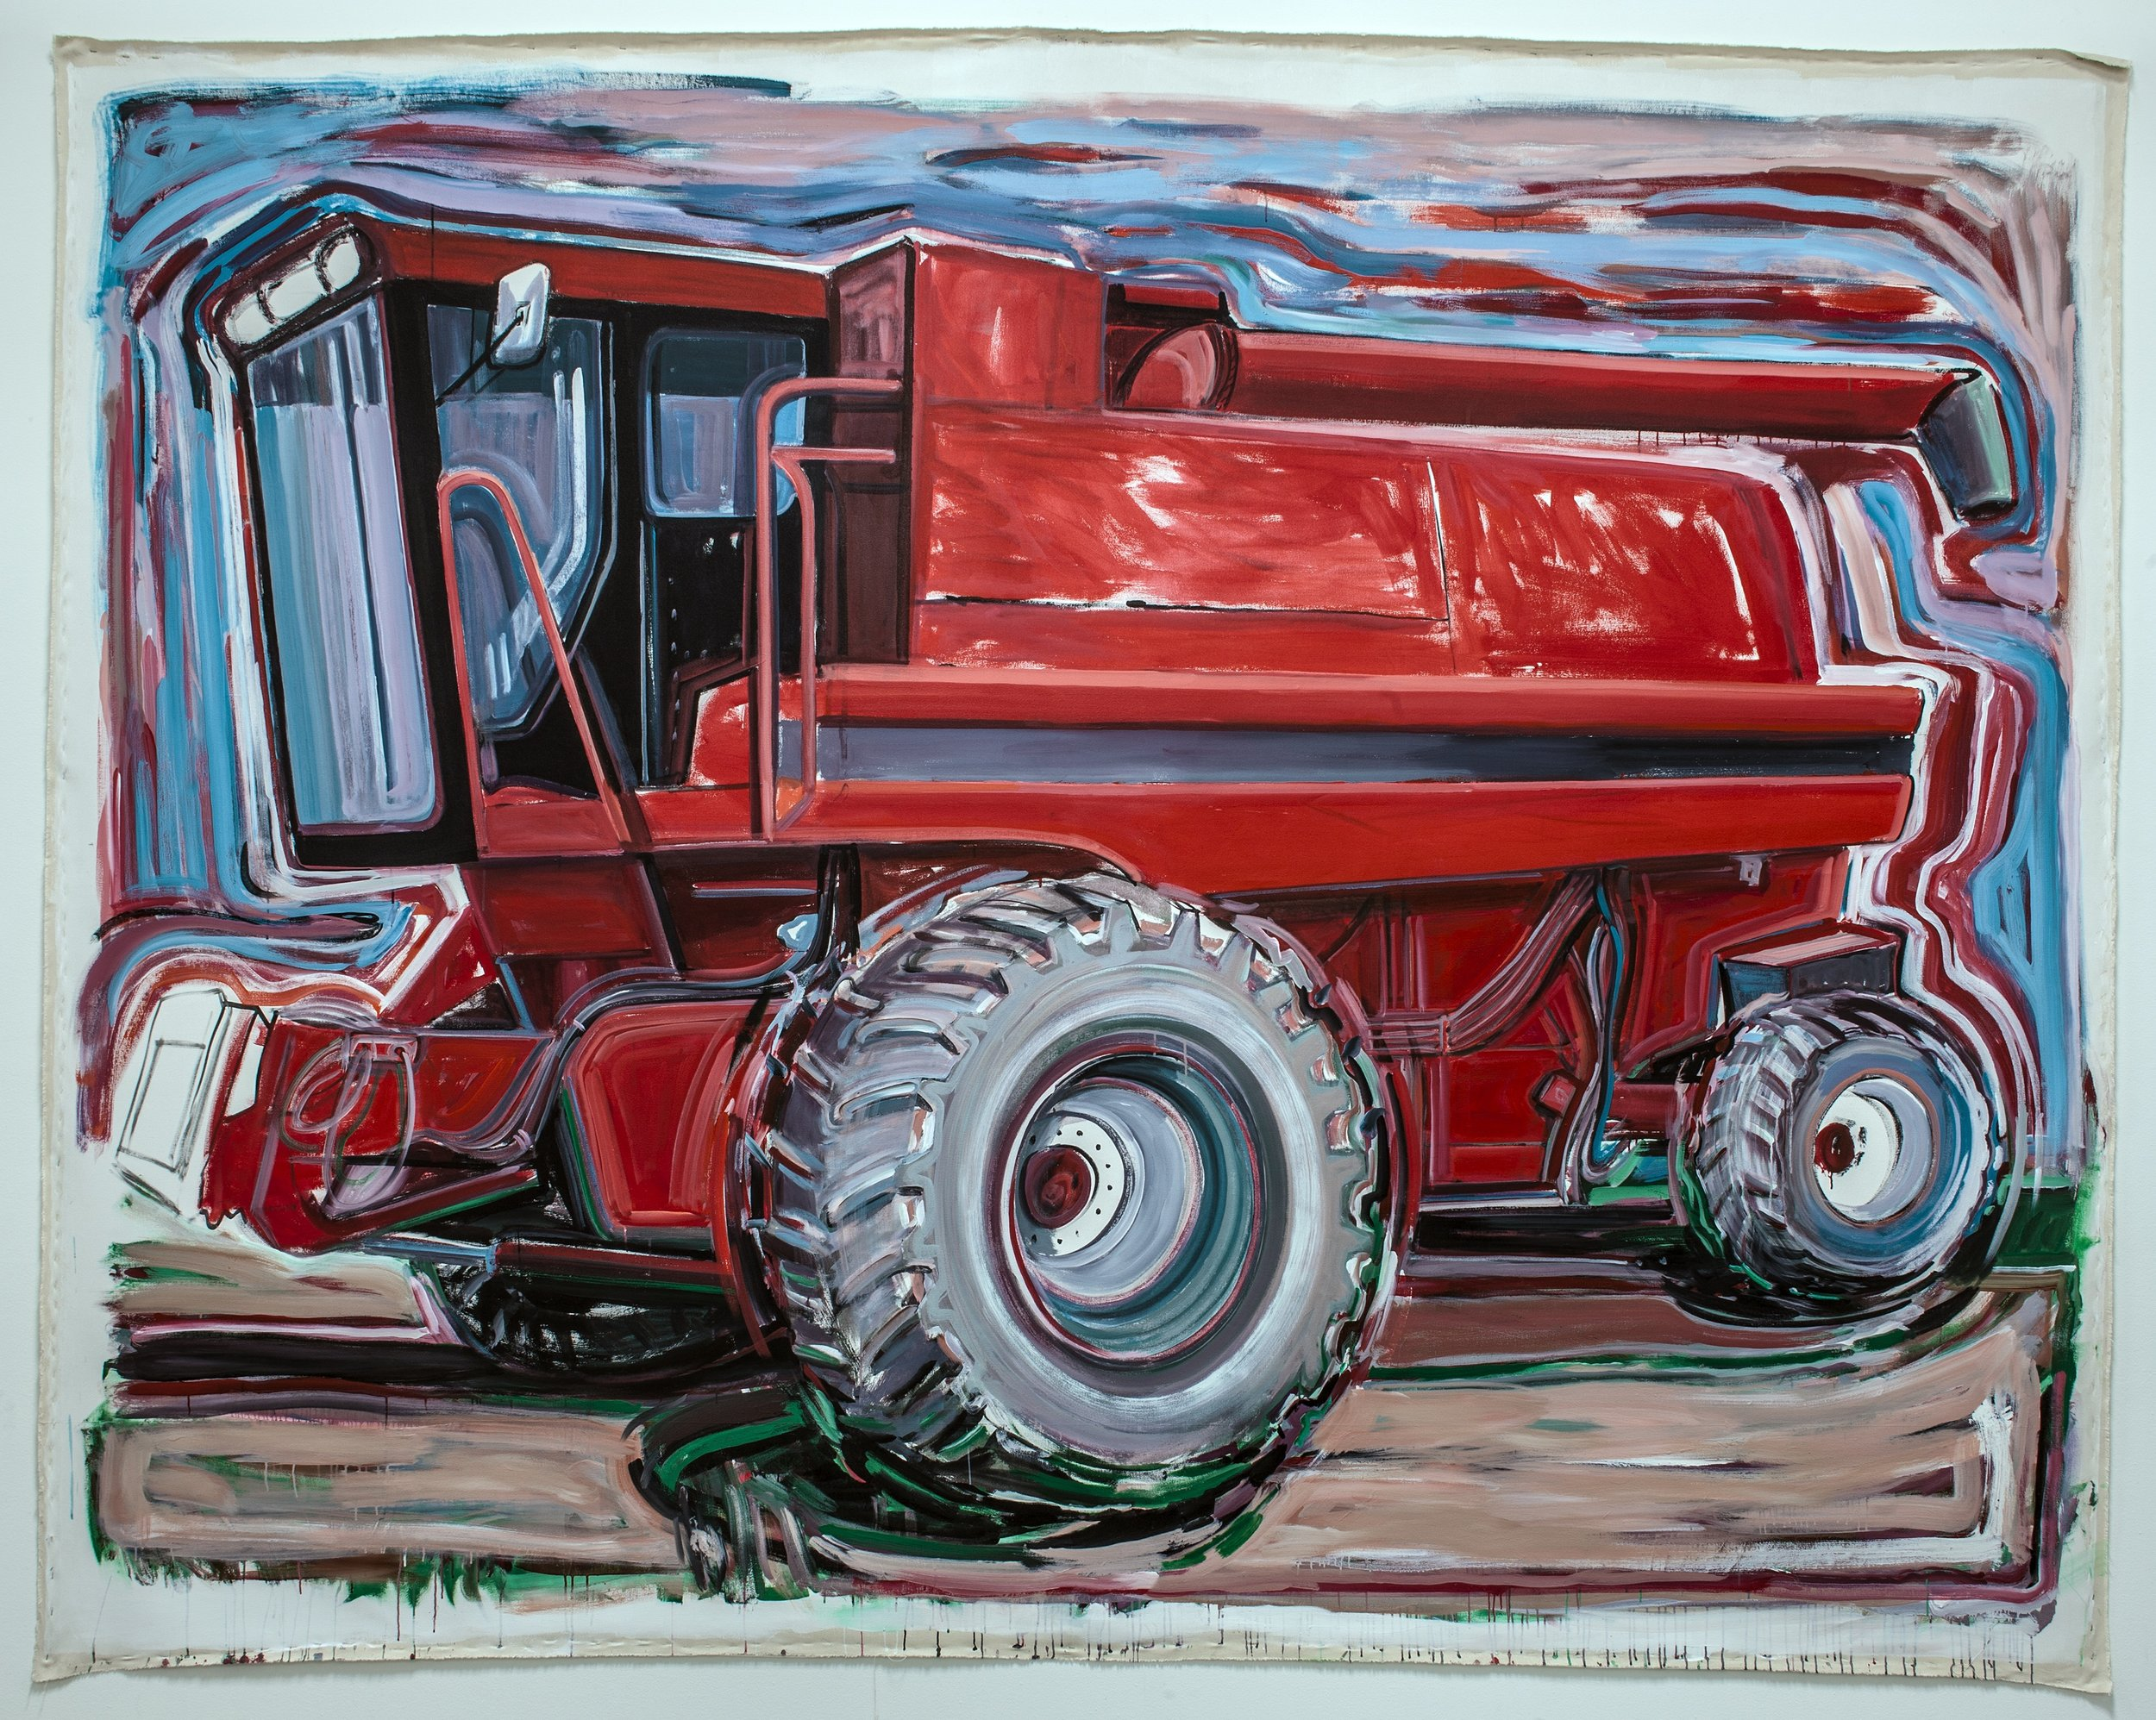 "Big Job (Case International Combine),   2013  Acrylic on  unstretched canvas  152"" x 144"" inches   Photo credit: Grant Mudford"